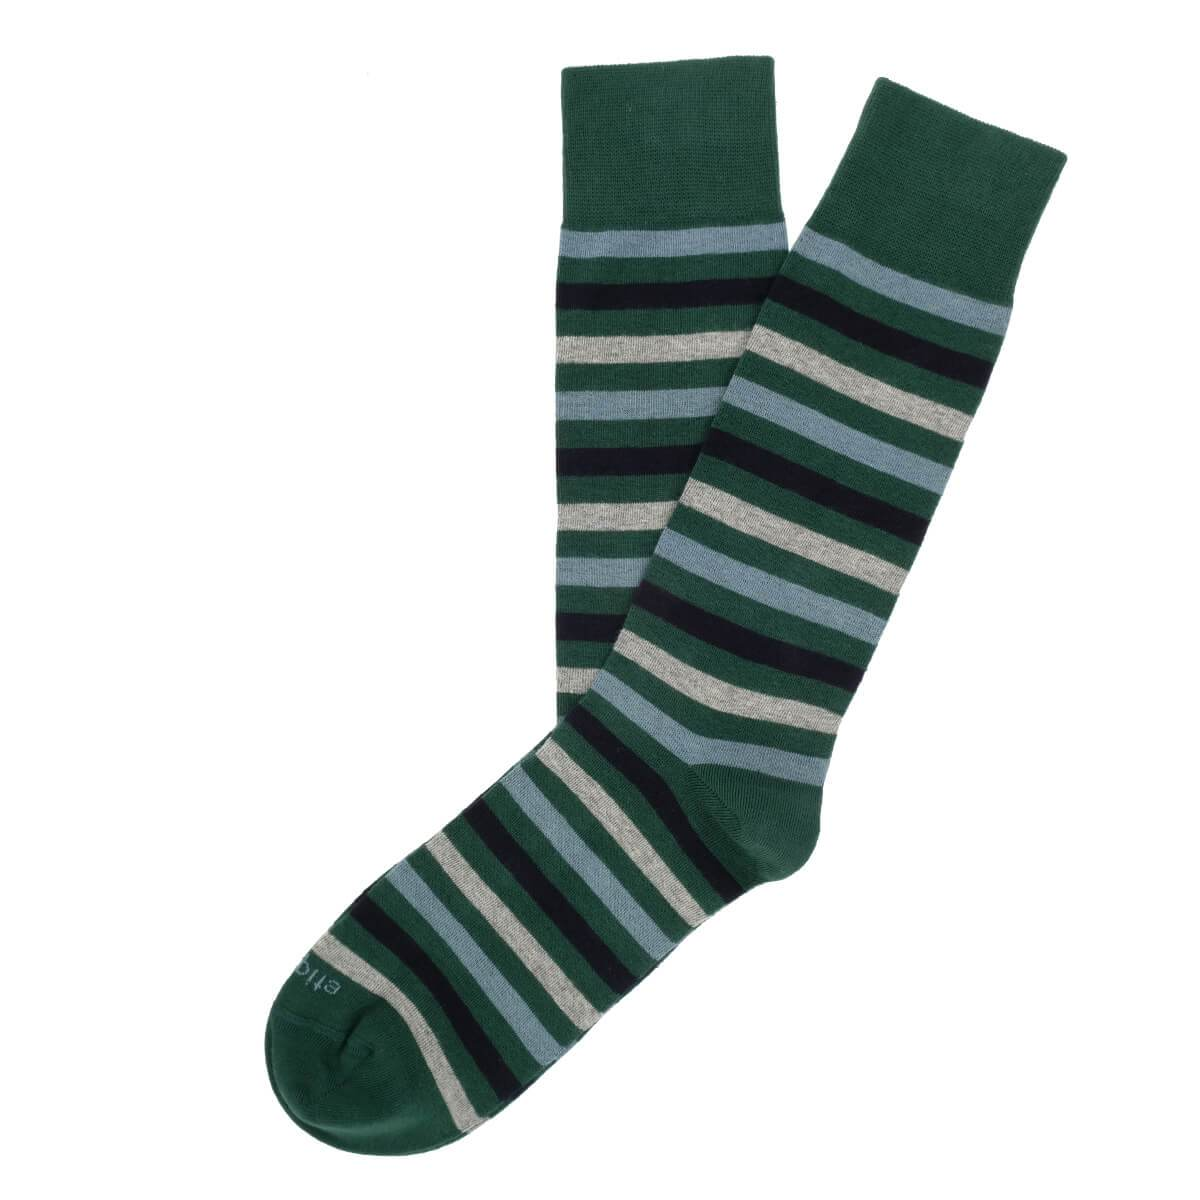 Crosswalk Stripes - Green - Mens Socks | Etiquette Clothiers Global Official